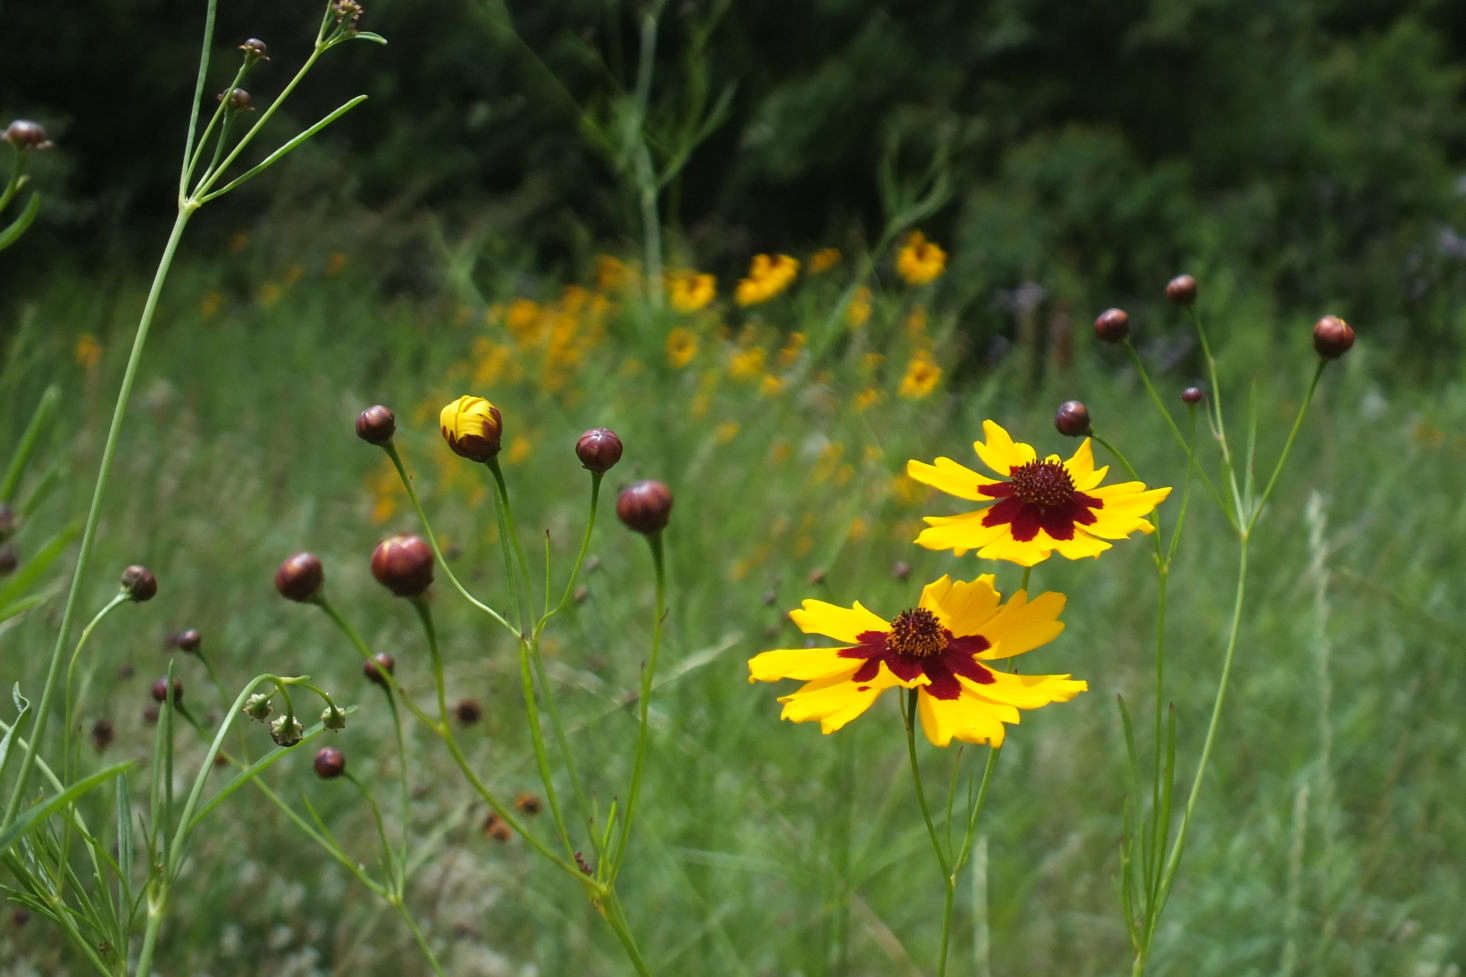 On some black-eyed Susan varieties, color seems to bleed from the center onto the petals. Two cultivars with brown or black color at the base of the petals are &#8